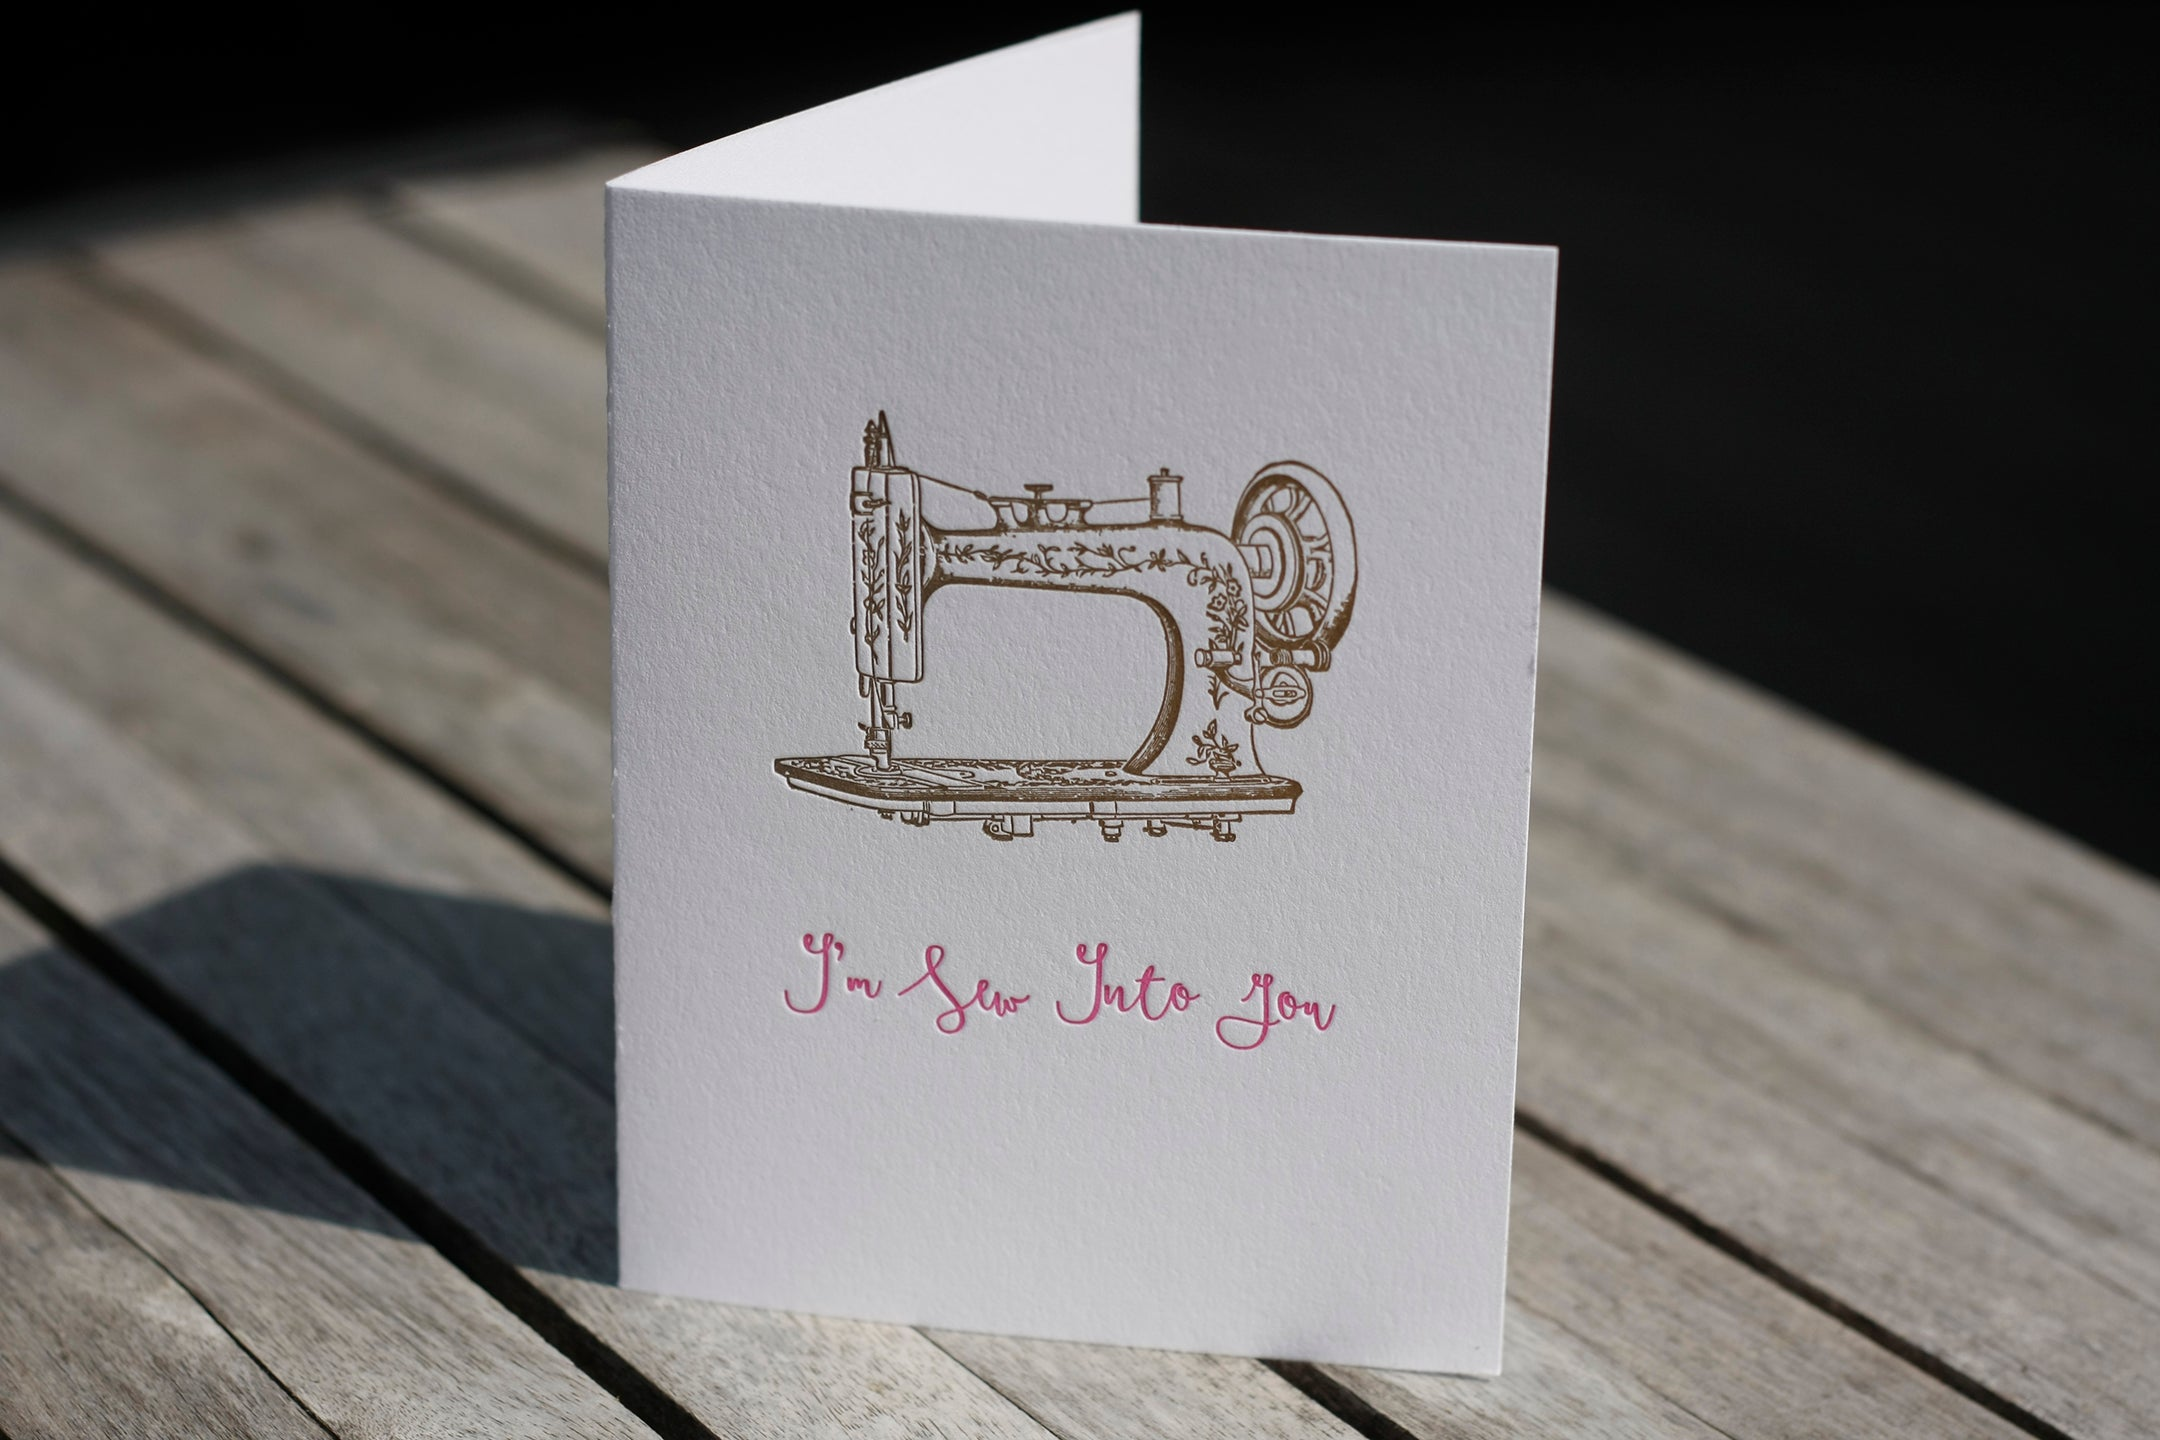 letterpress greeting cards custom printing humor fun ligh hearted greeting cards modern clean simple crane lettrea